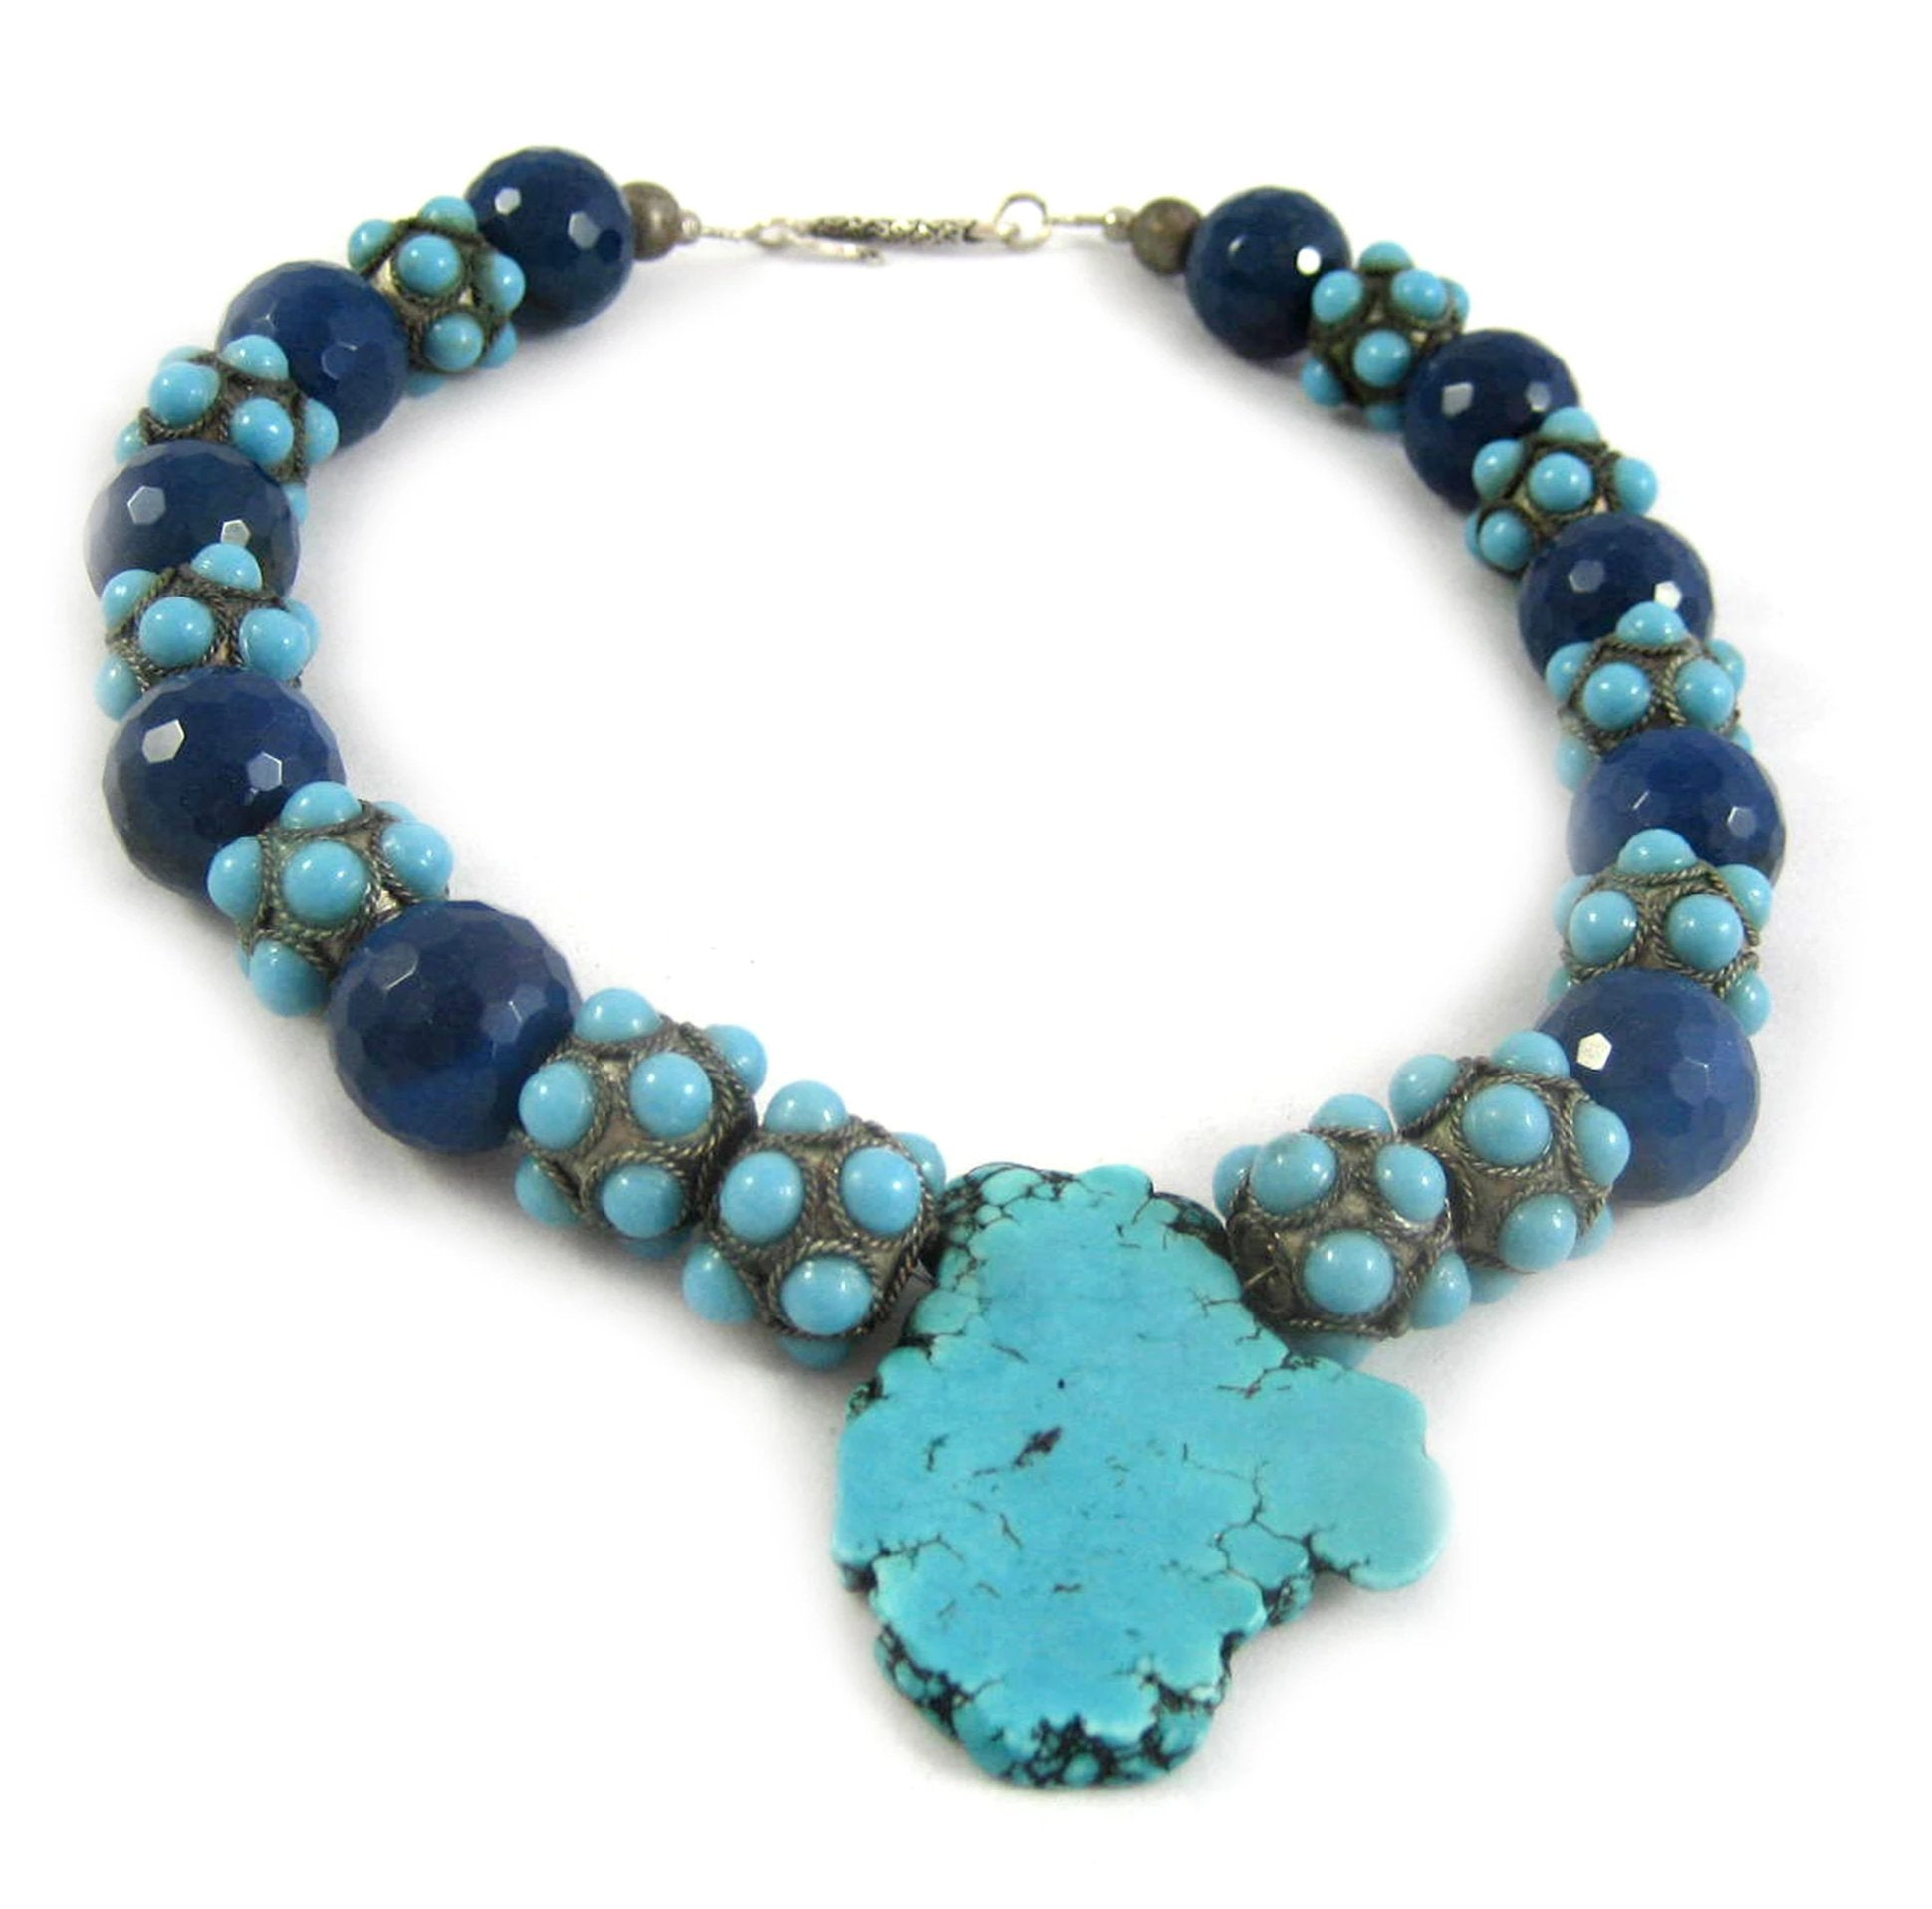 Turquoise Slab statement necklace with royal azure blue faceted beads and studded spacers